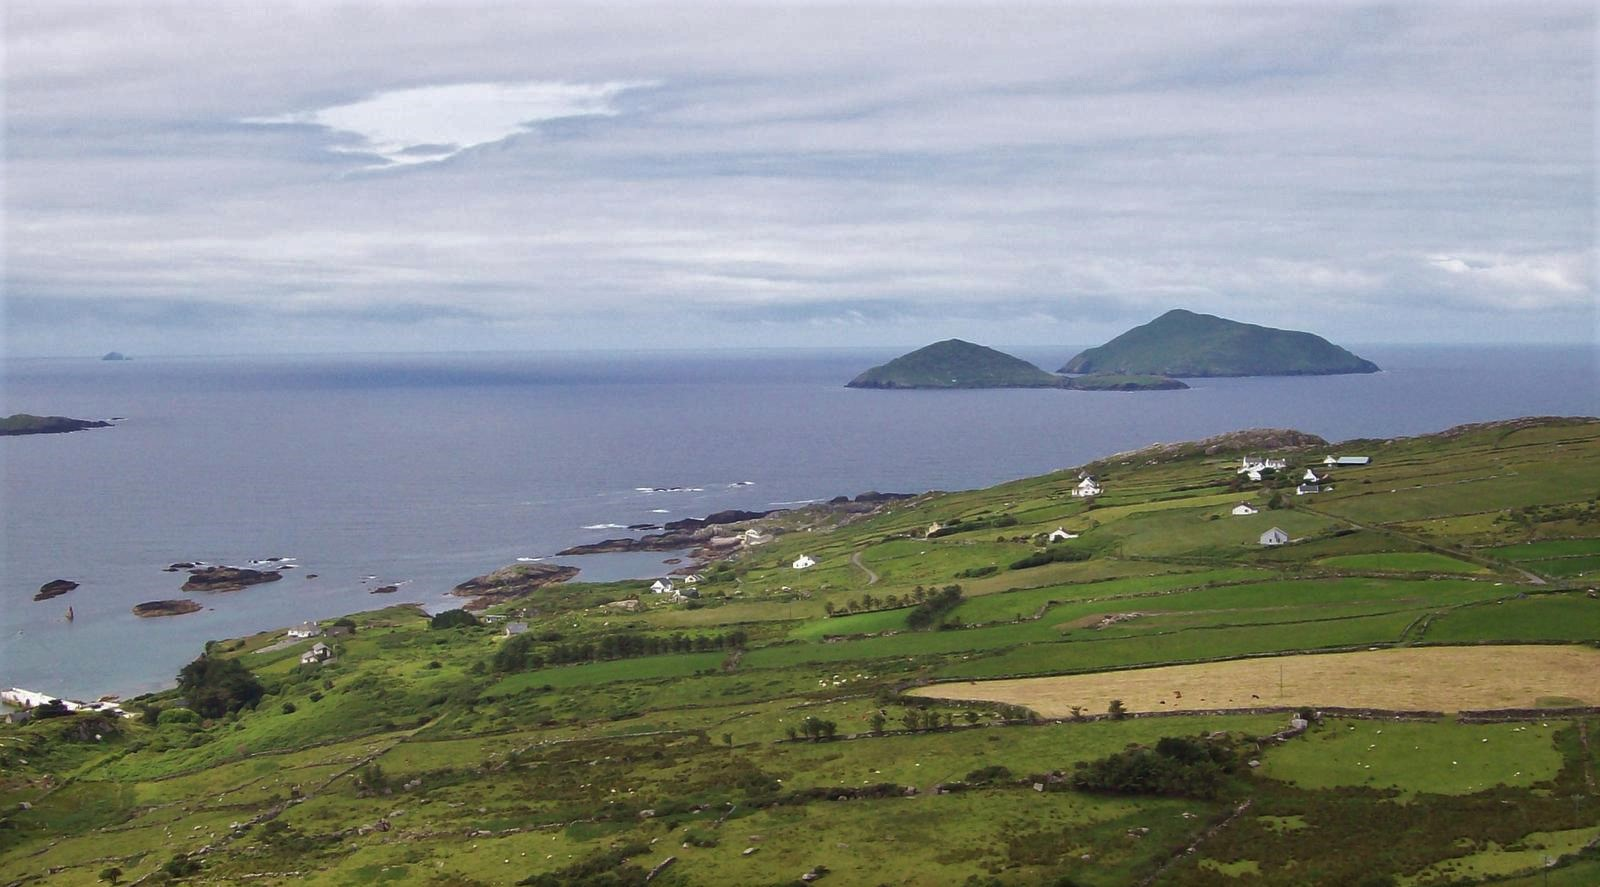 Ring of Kerry by Derrynane - Irland